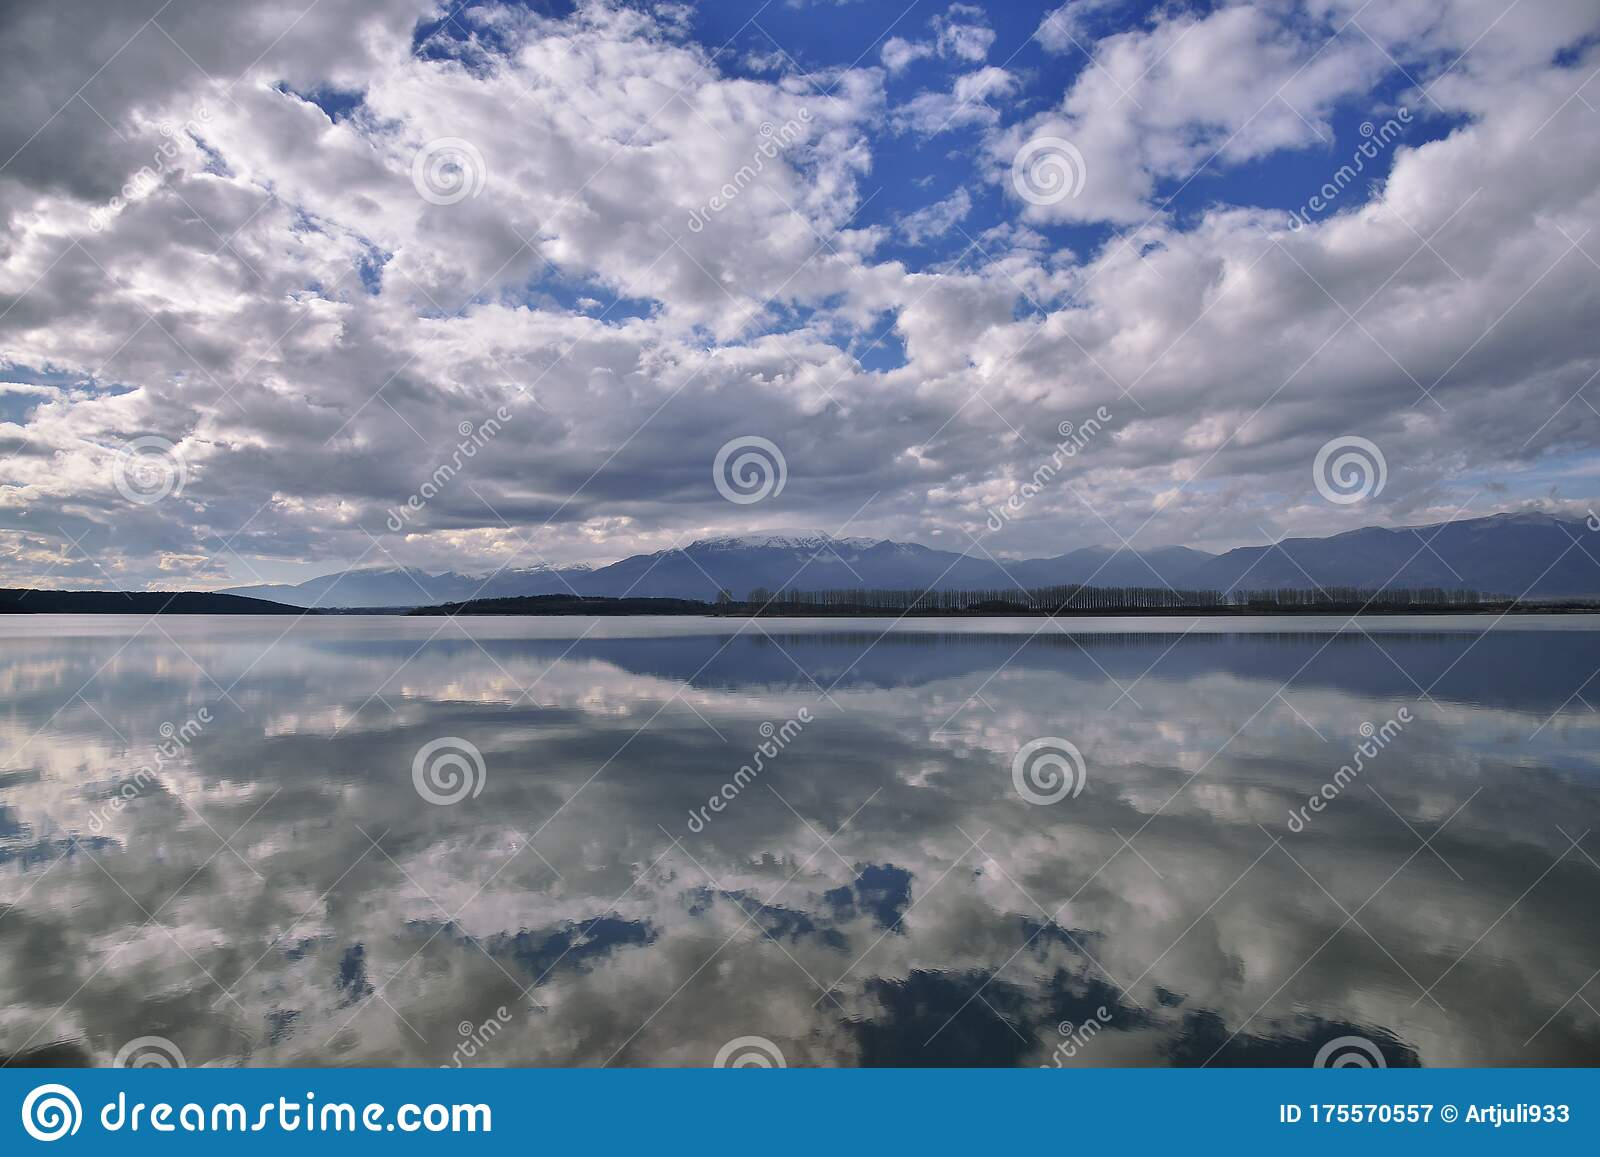 Beautiful Nature Background Blue Wallpaper Water Landscape Art Photography Sky Clouds Lake Mountain Trees Relaxation Pond Snow Stock Image Image Of Fantasy Greeting 175570557